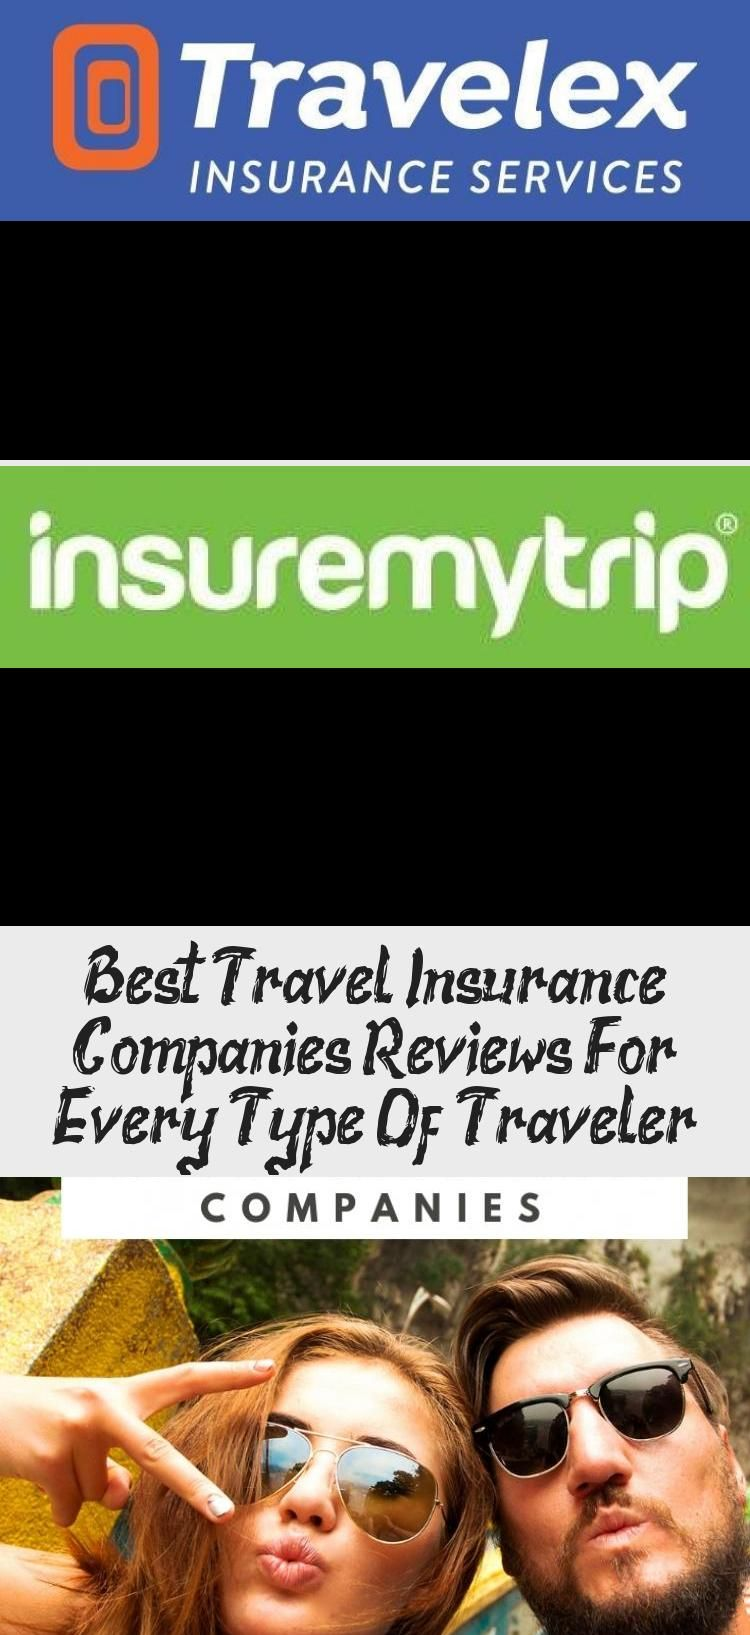 Best Travel Insurance Companies Reviews For Every Type Of